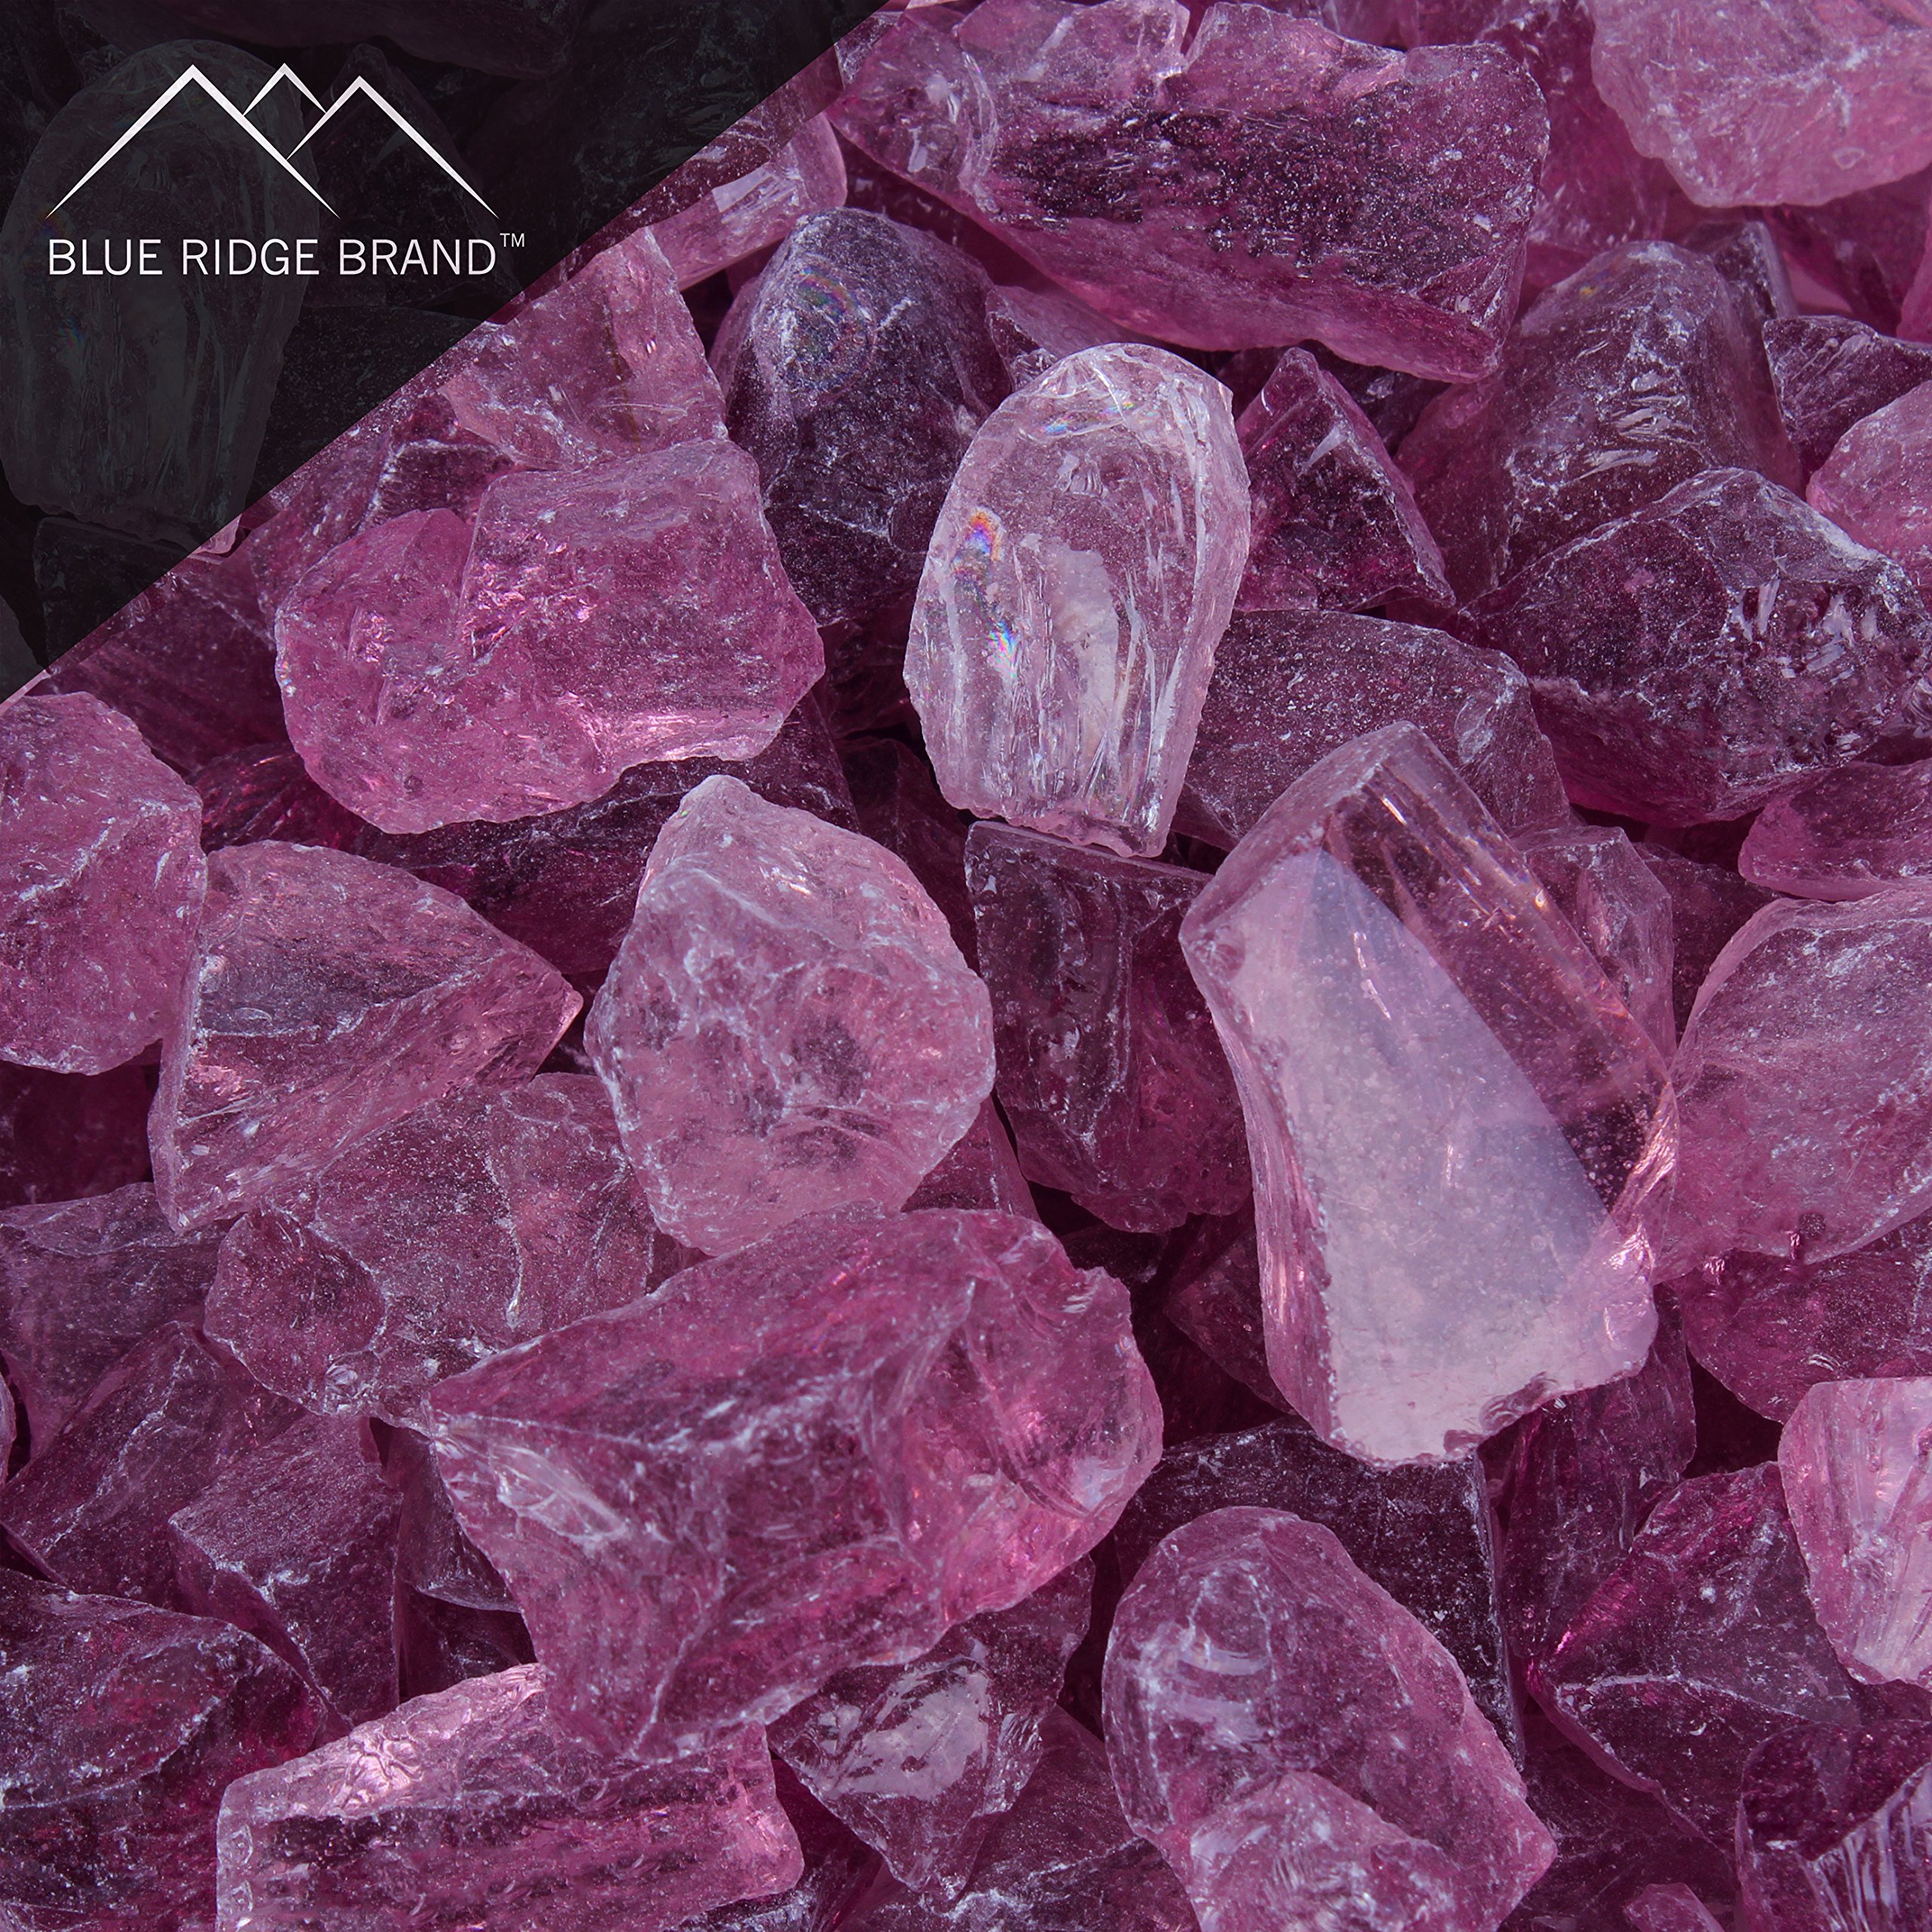 Blue Ridge Brand trade; Light Purple Fire Glass - 5-Pound Professional Grade Fire Pit Glass - 1/2'' Glass Rocks for Fire Pit and Landscaping by Blue Ridge Brand